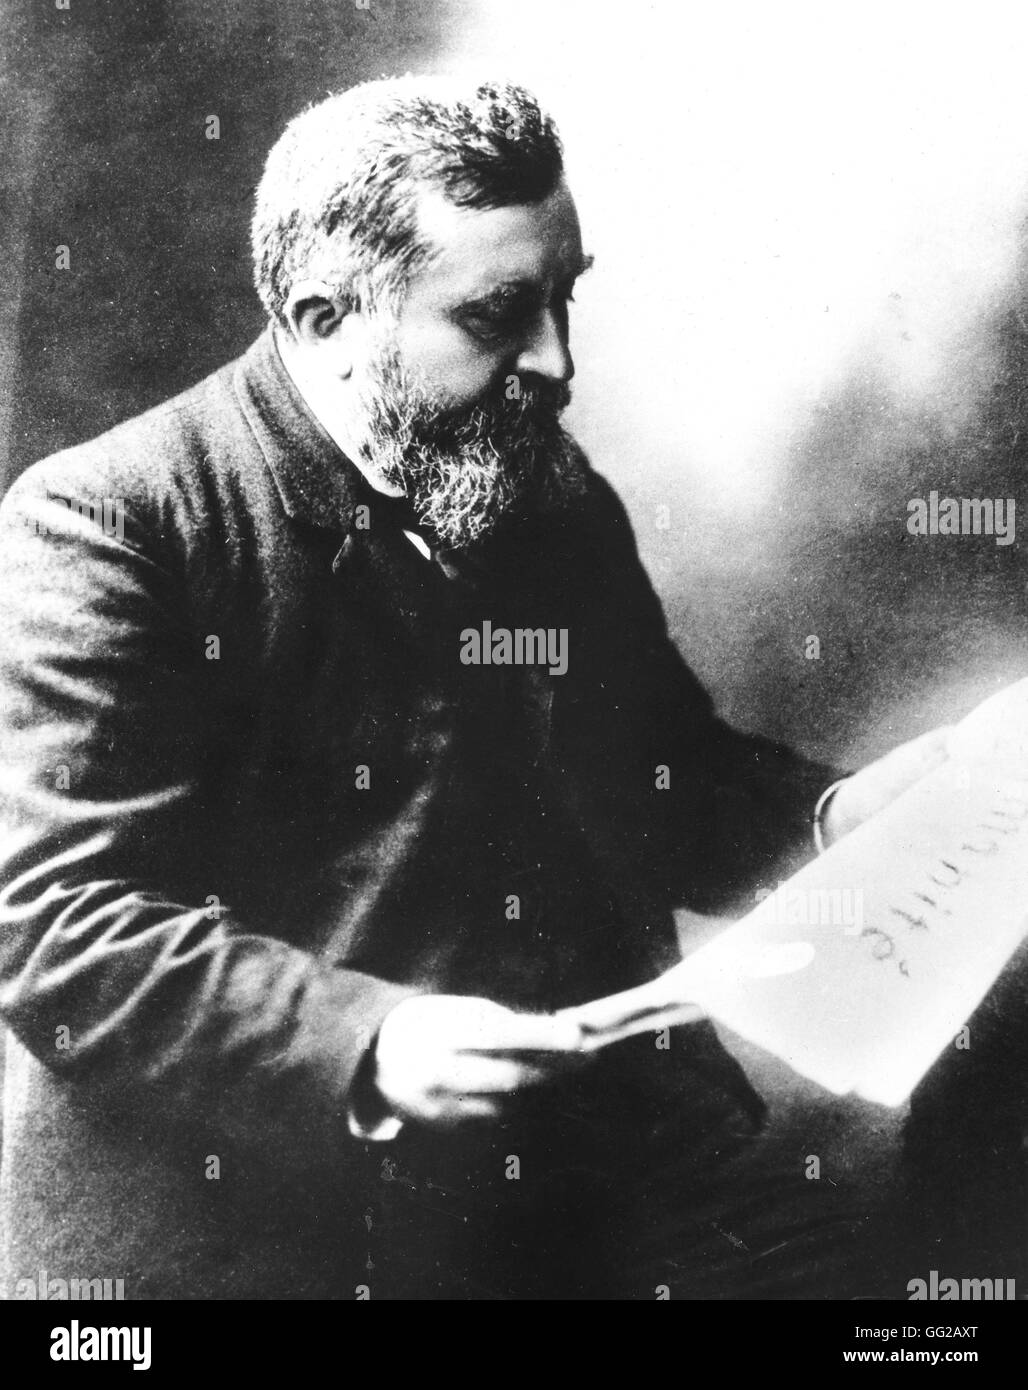 Jean Jaurès reading the French newspaper 'LHumanité' Photo by Henri Manuel 20th century France - Stock Image